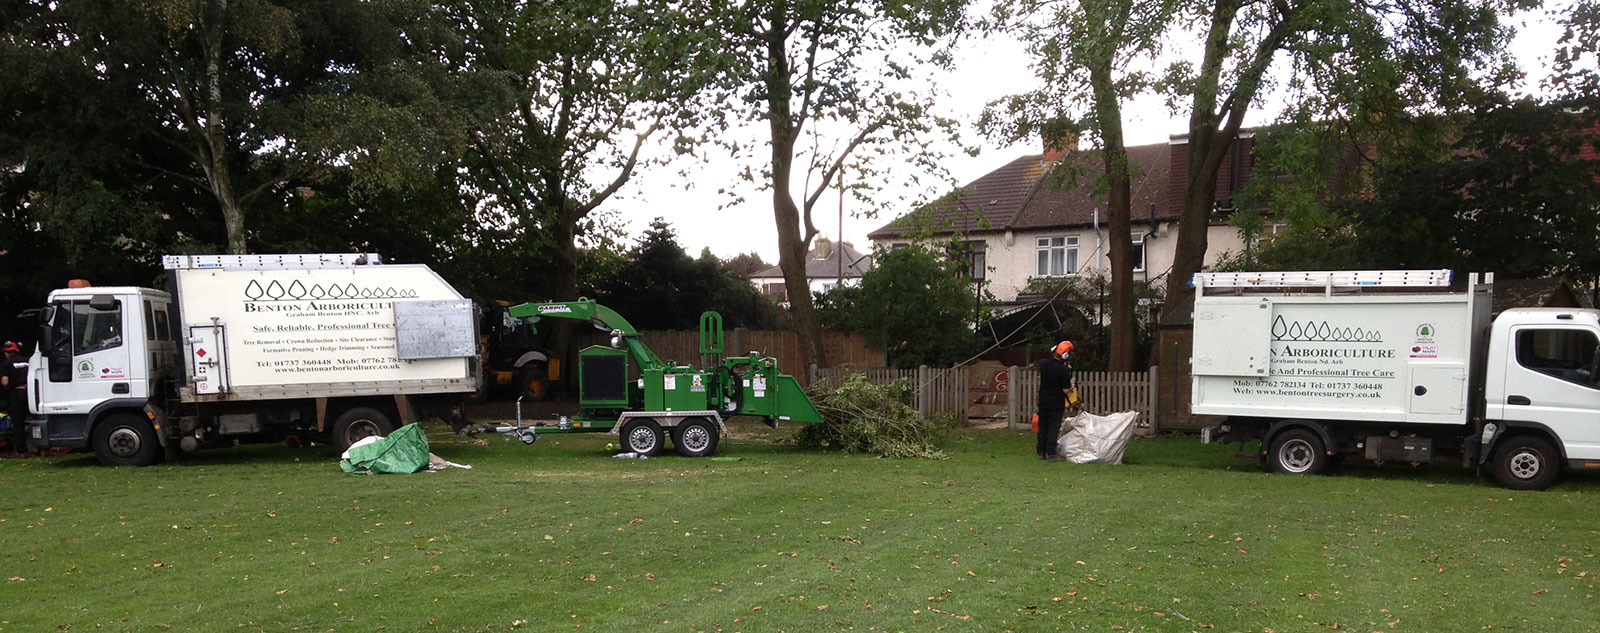 Tree Pruning Services by Benton Arboriculture